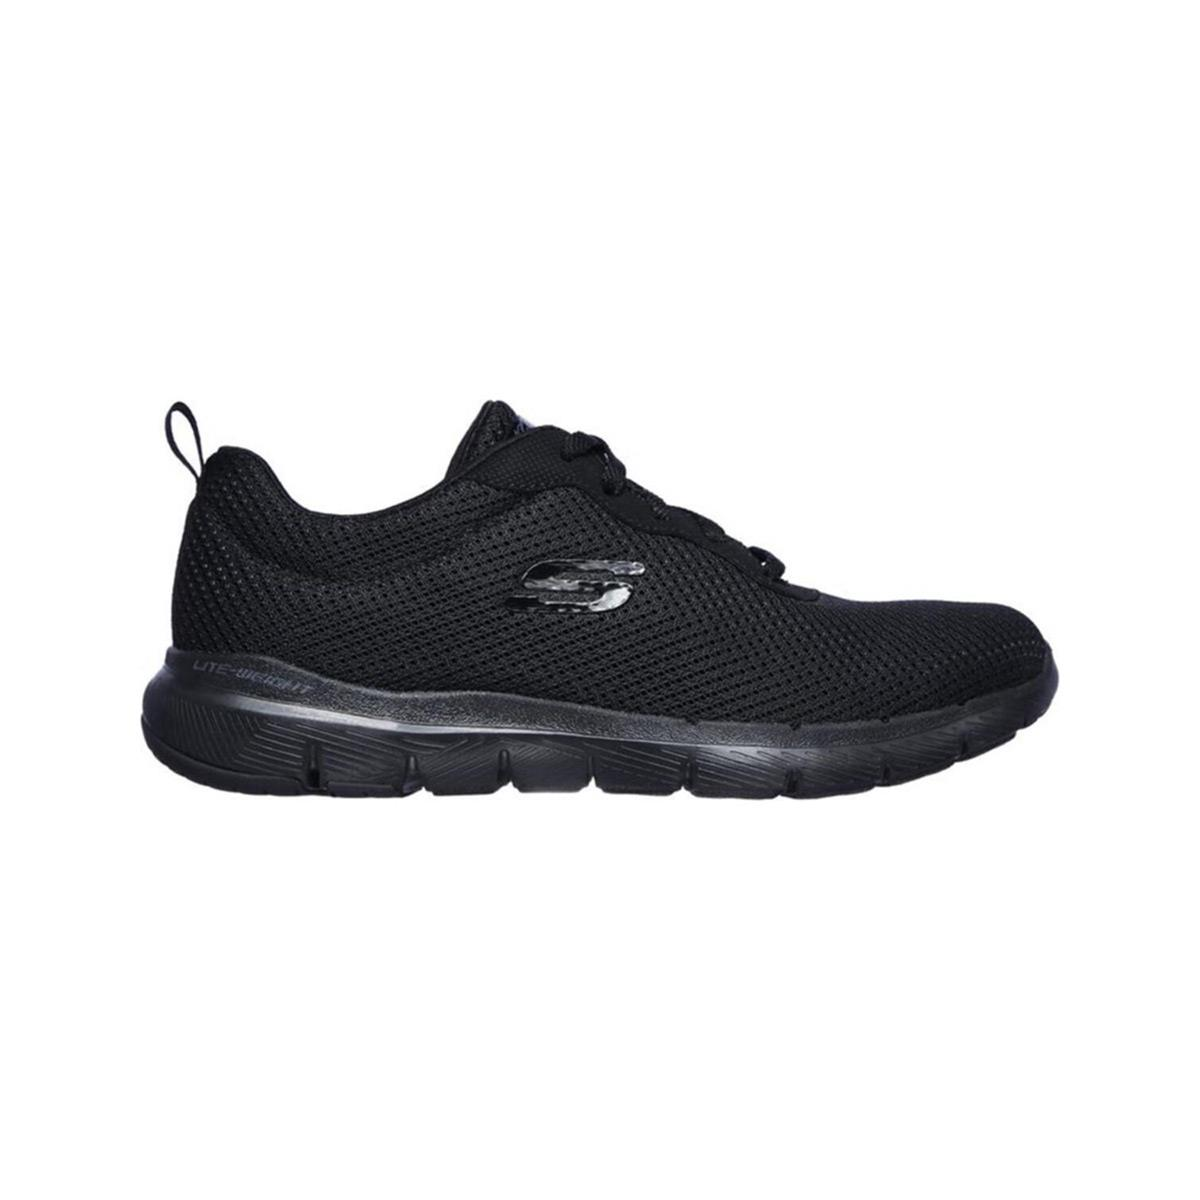 Skechers FLEX APPEAL 3.0-FIRST INSIGHT Bayan Ayakkabısı SKCS13070 BBK